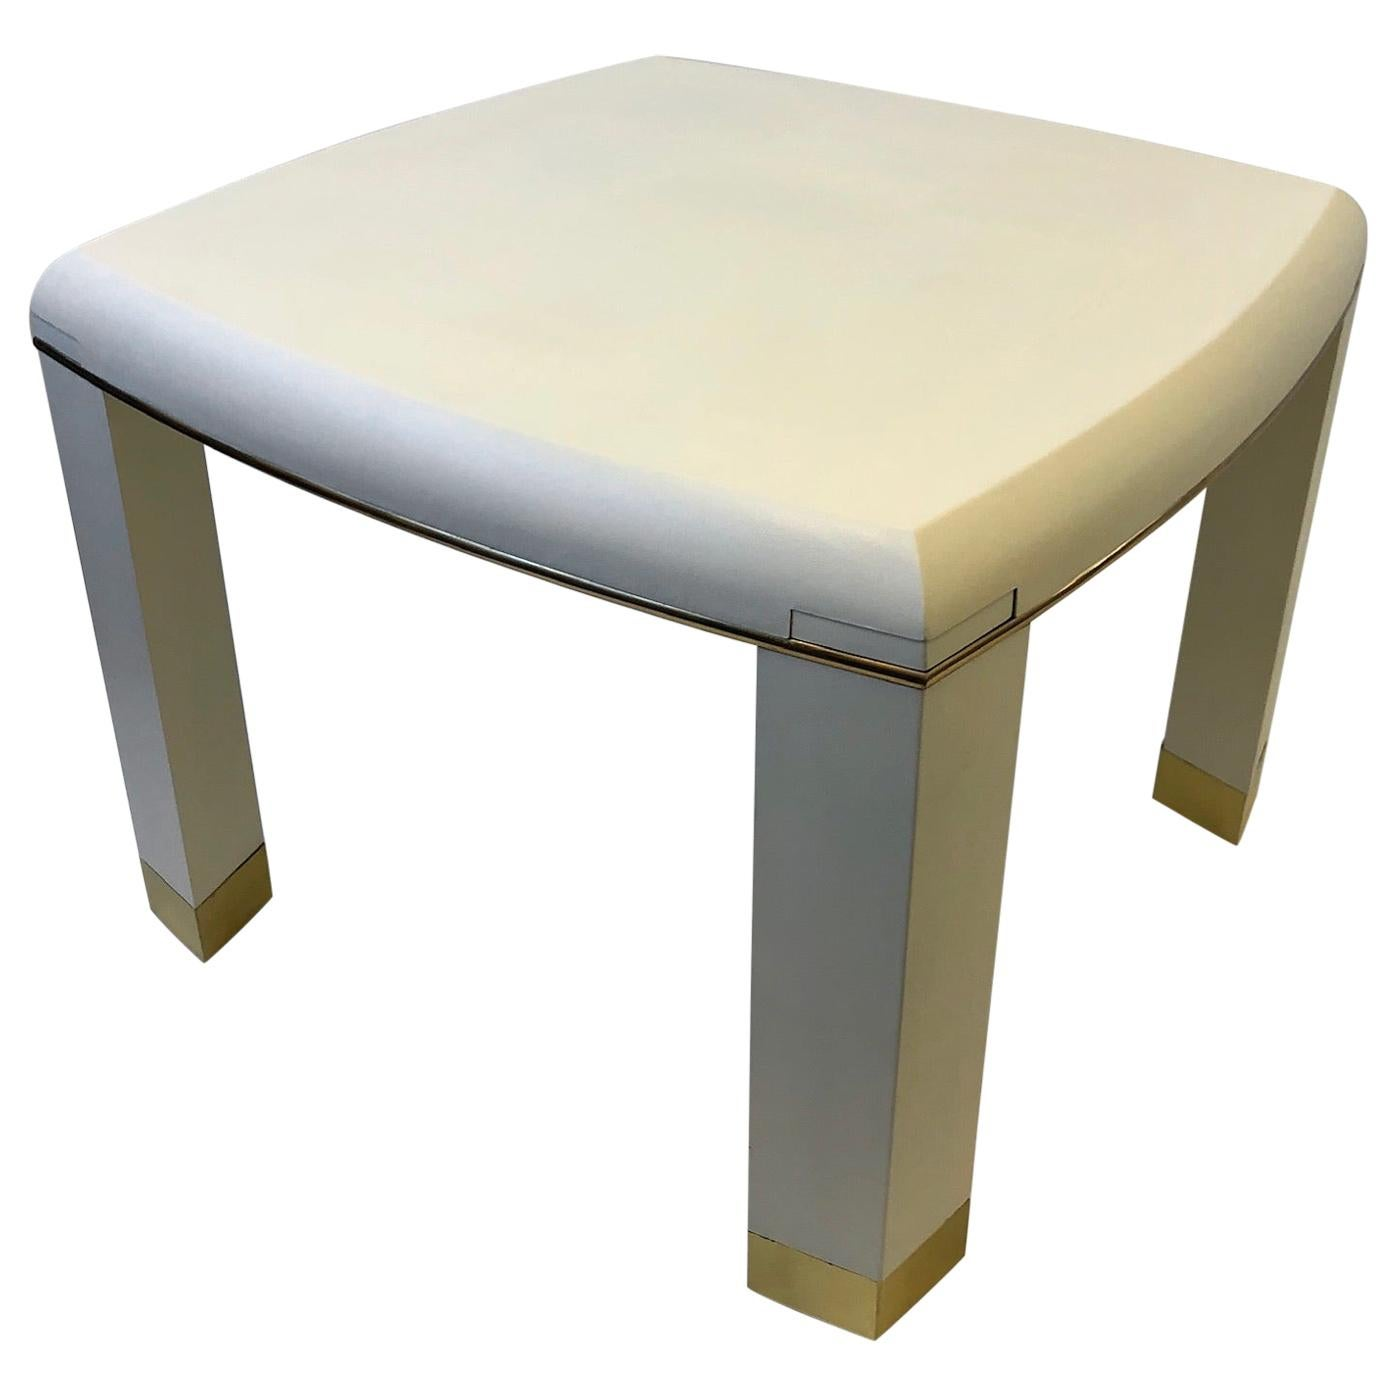 Off-White Snake Leather and Brass Game Table with Drink Holder, Springer Style